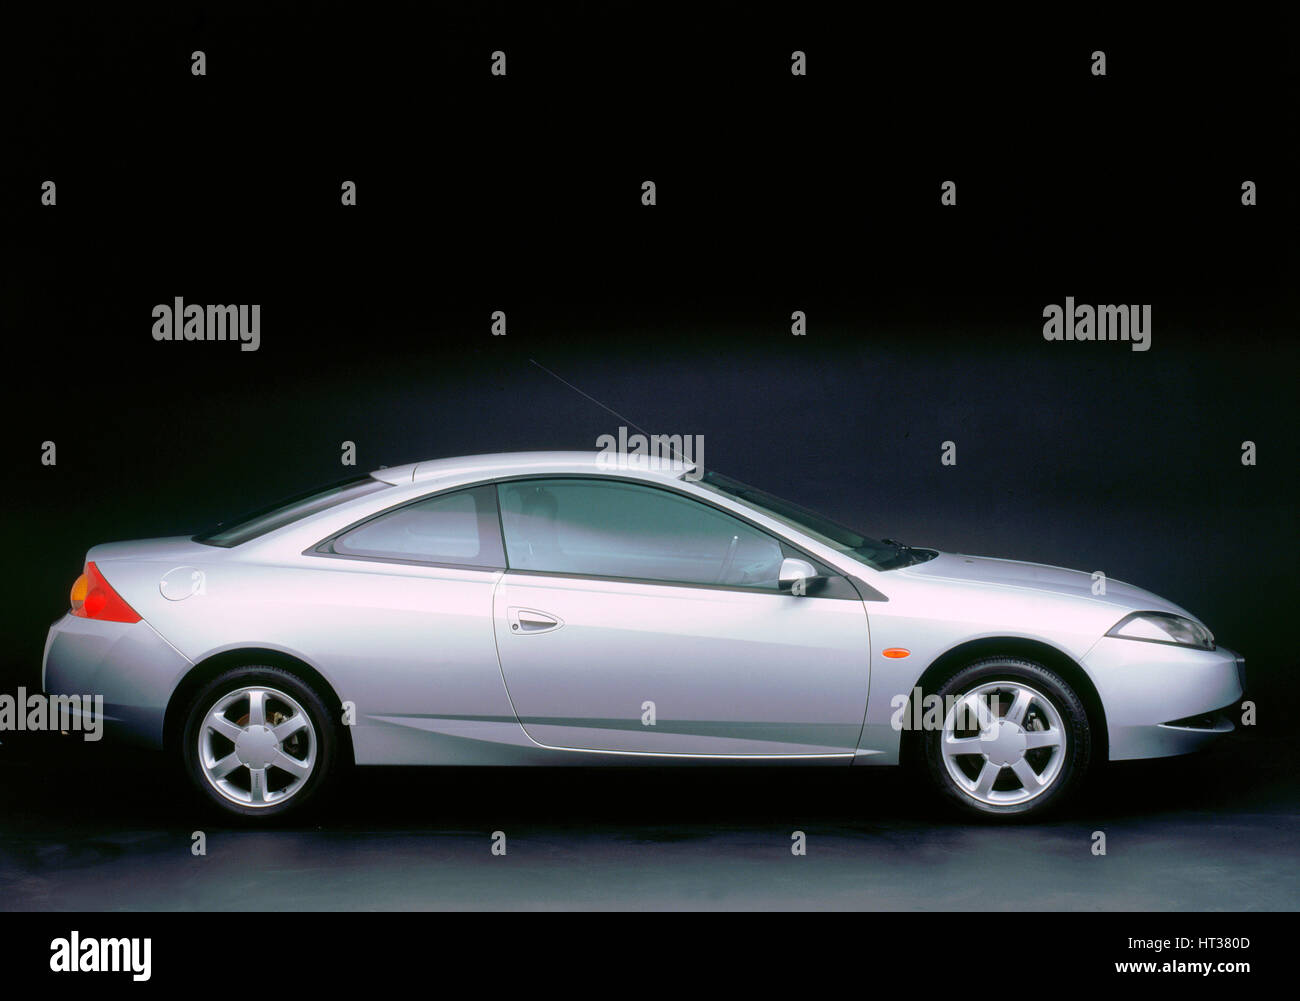 1999 ford cougar artist unknown